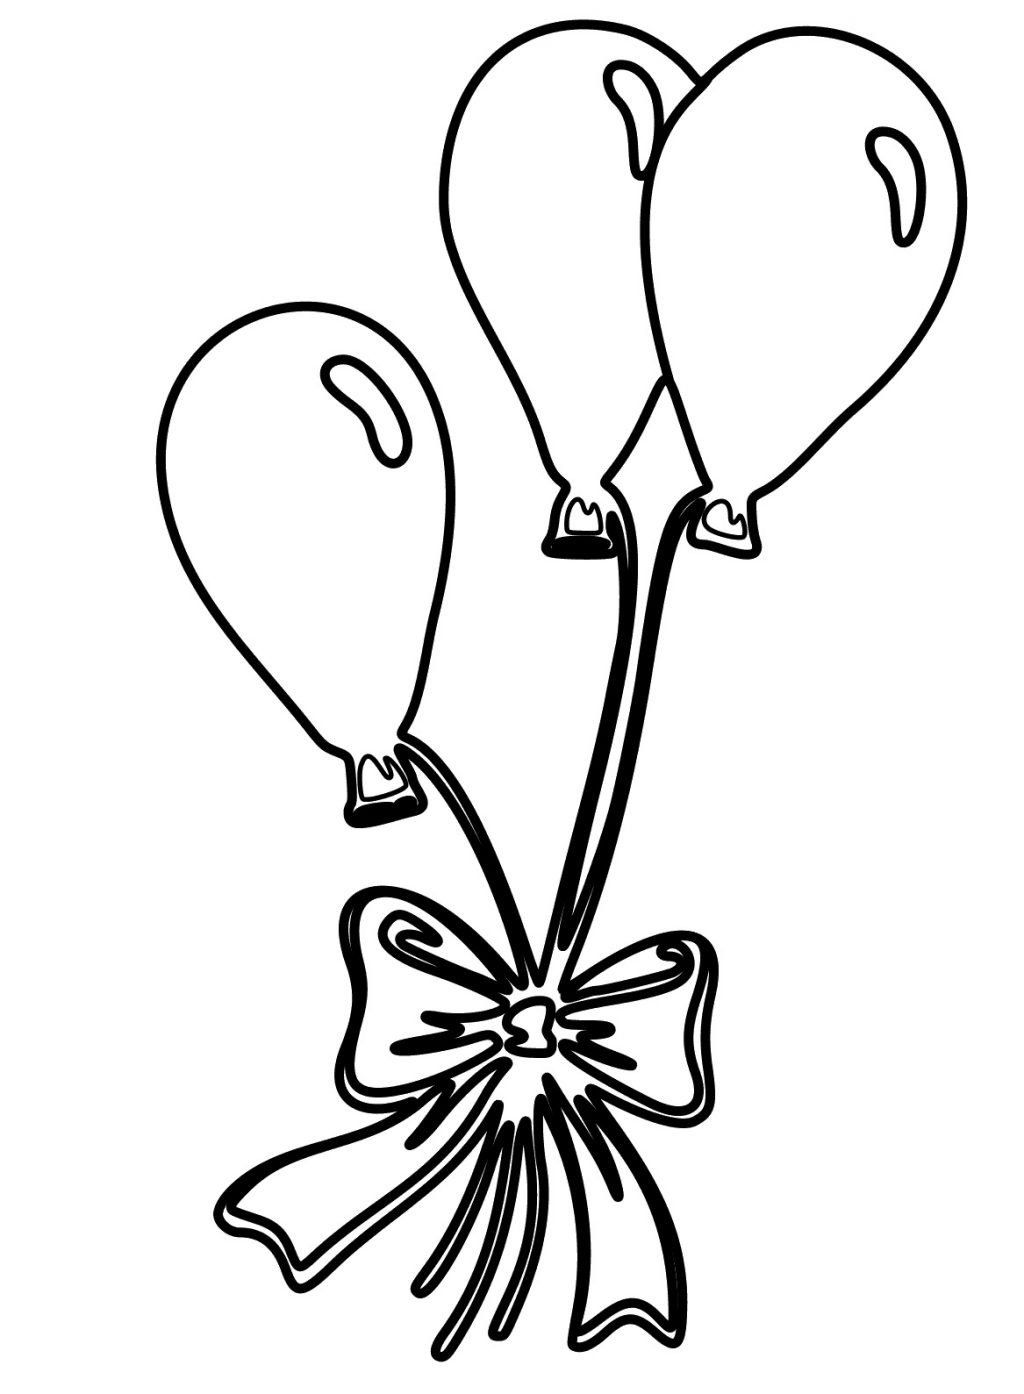 Birthday Balloons Coloring Pages Coloring Page Birthday Balloon Colorings Astonis In 2020 Birthday Coloring Pages Coloring Pages For Kids Happy Birthday Coloring Pages